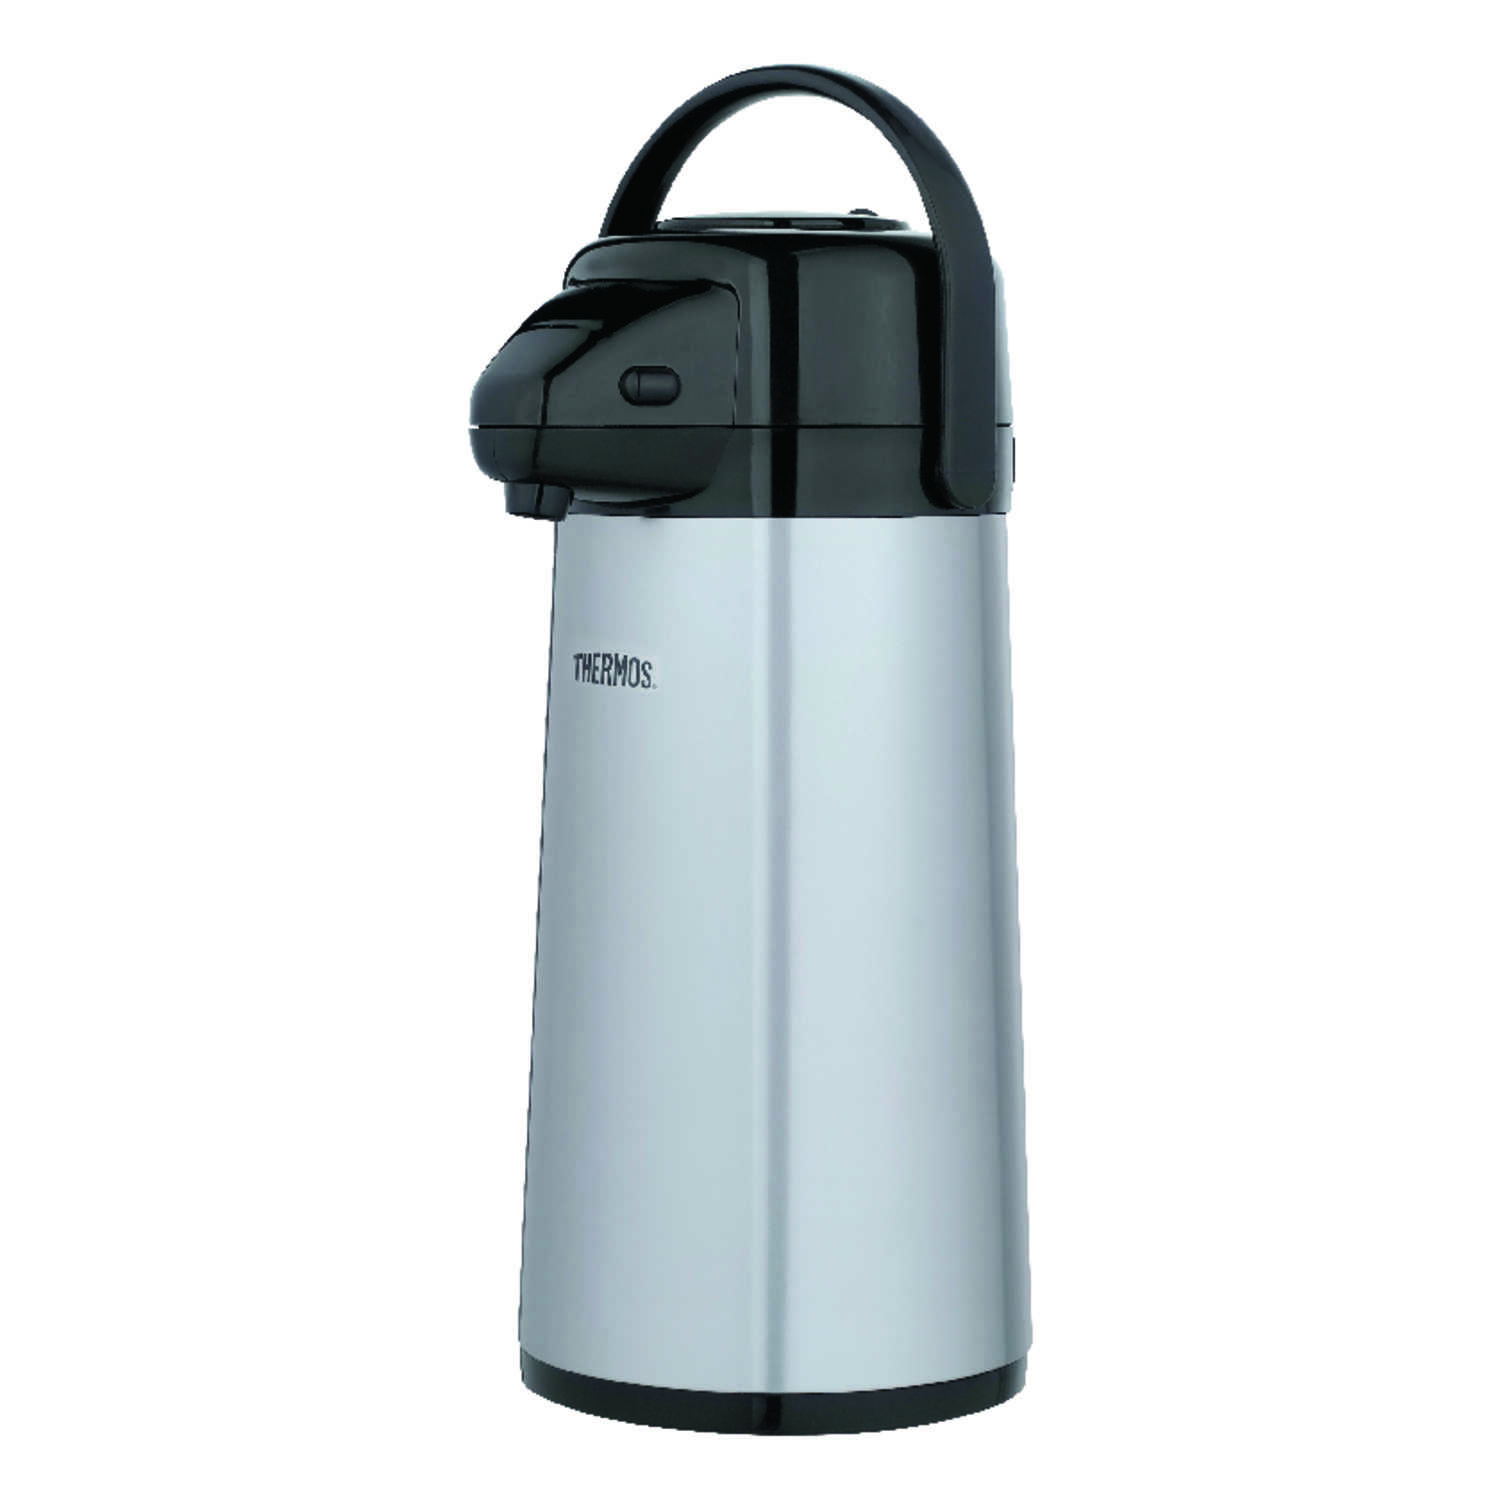 Thermos  Black/Silver  Carafe  Stainless Steel